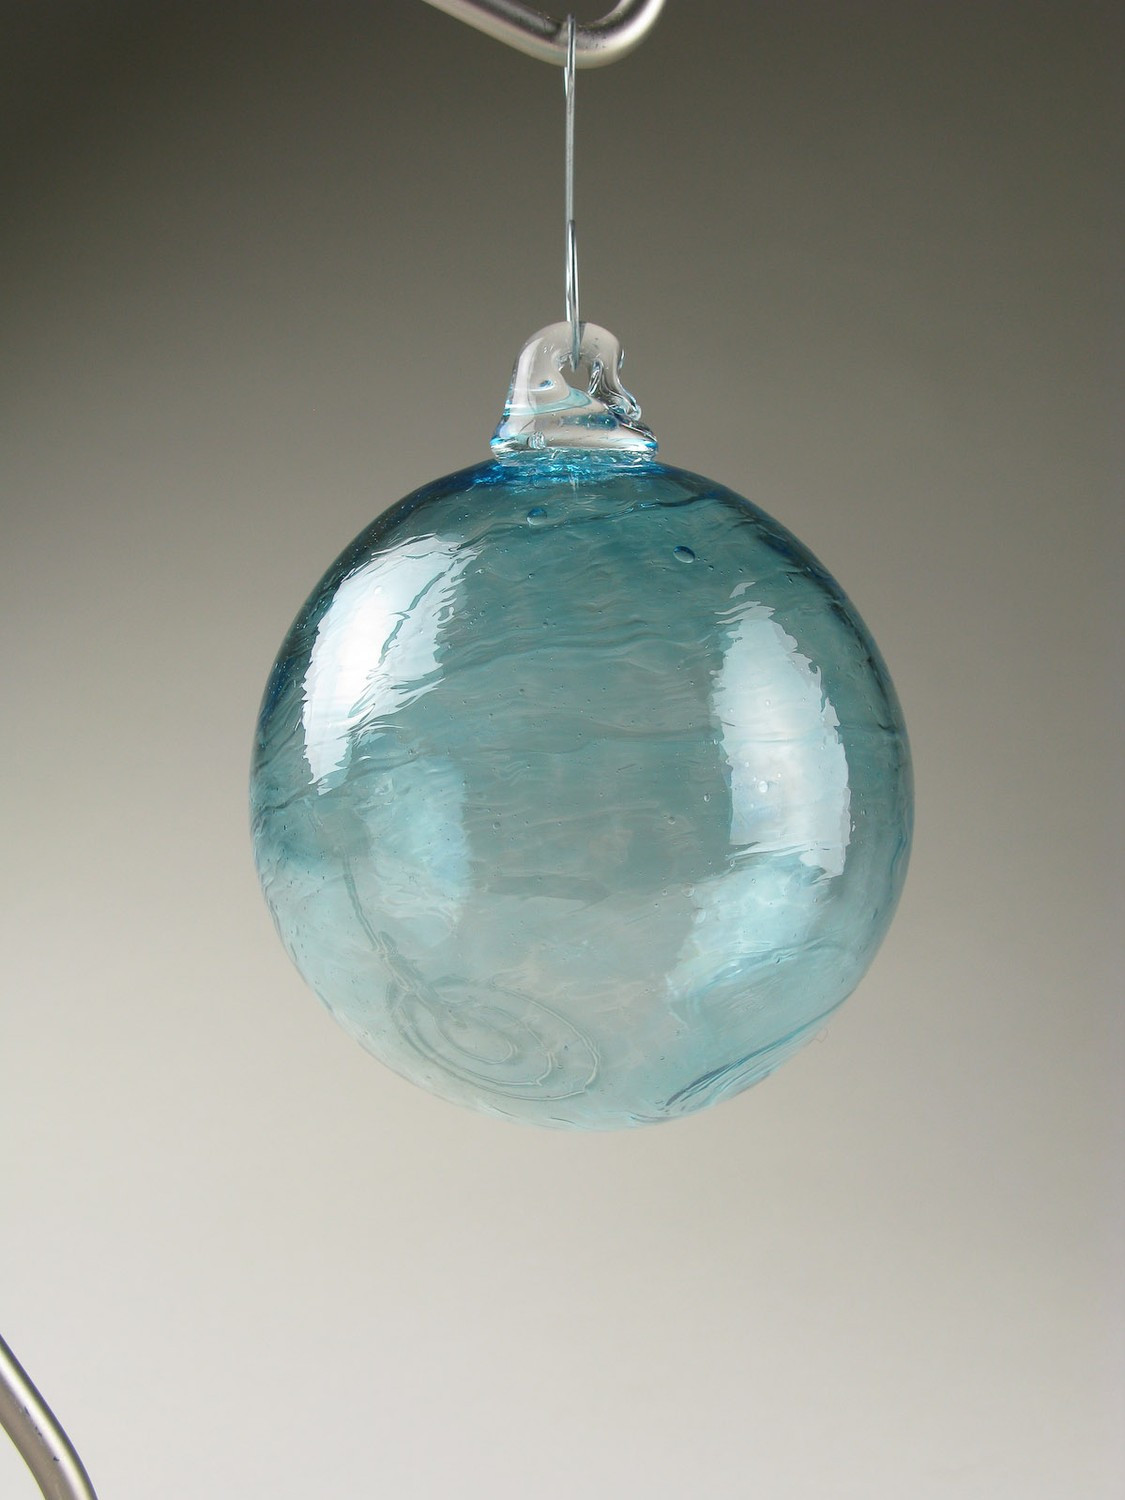 Glass ornament Balls Fresh Glass Christmas ornaments & S Of Charming 49 Pictures Glass ornament Balls